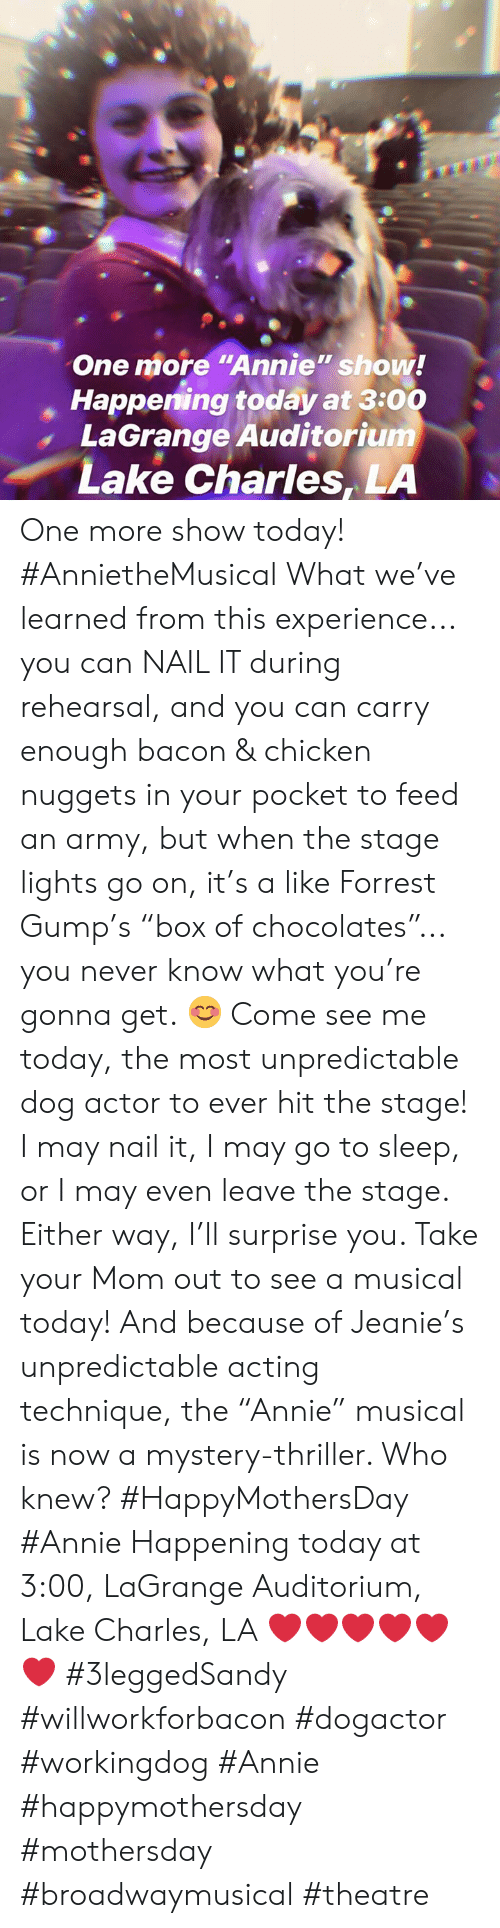 "Forrest Gump, Go to Sleep, and Memes: One more ""Annie"" show!  Happening today at 3:00  LaGrange Auditorium  Lake Charles, LA One more show today! #AnnietheMusical  What we've learned from this experience... you can NAIL IT during rehearsal, and you can carry enough bacon & chicken nuggets in your pocket to feed an army, but when the stage lights go on, it's a like Forrest Gump's ""box of chocolates""... you never know what you're gonna get. 😊   Come see me today, the most unpredictable dog actor to ever hit the stage! I may nail it, I may go to sleep, or I may even leave the stage.  Either way, I'll surprise you.  Take your Mom out to see a musical today! And because of Jeanie's unpredictable acting technique, the ""Annie"" musical is now a mystery-thriller. Who knew?  #HappyMothersDay #Annie  Happening today at 3:00, LaGrange Auditorium, Lake Charles, LA   ❤️❤️❤️❤️❤️❤️  #3leggedSandy #willworkforbacon #dogactor #workingdog #Annie #happymothersday #mothersday #broadwaymusical #theatre"